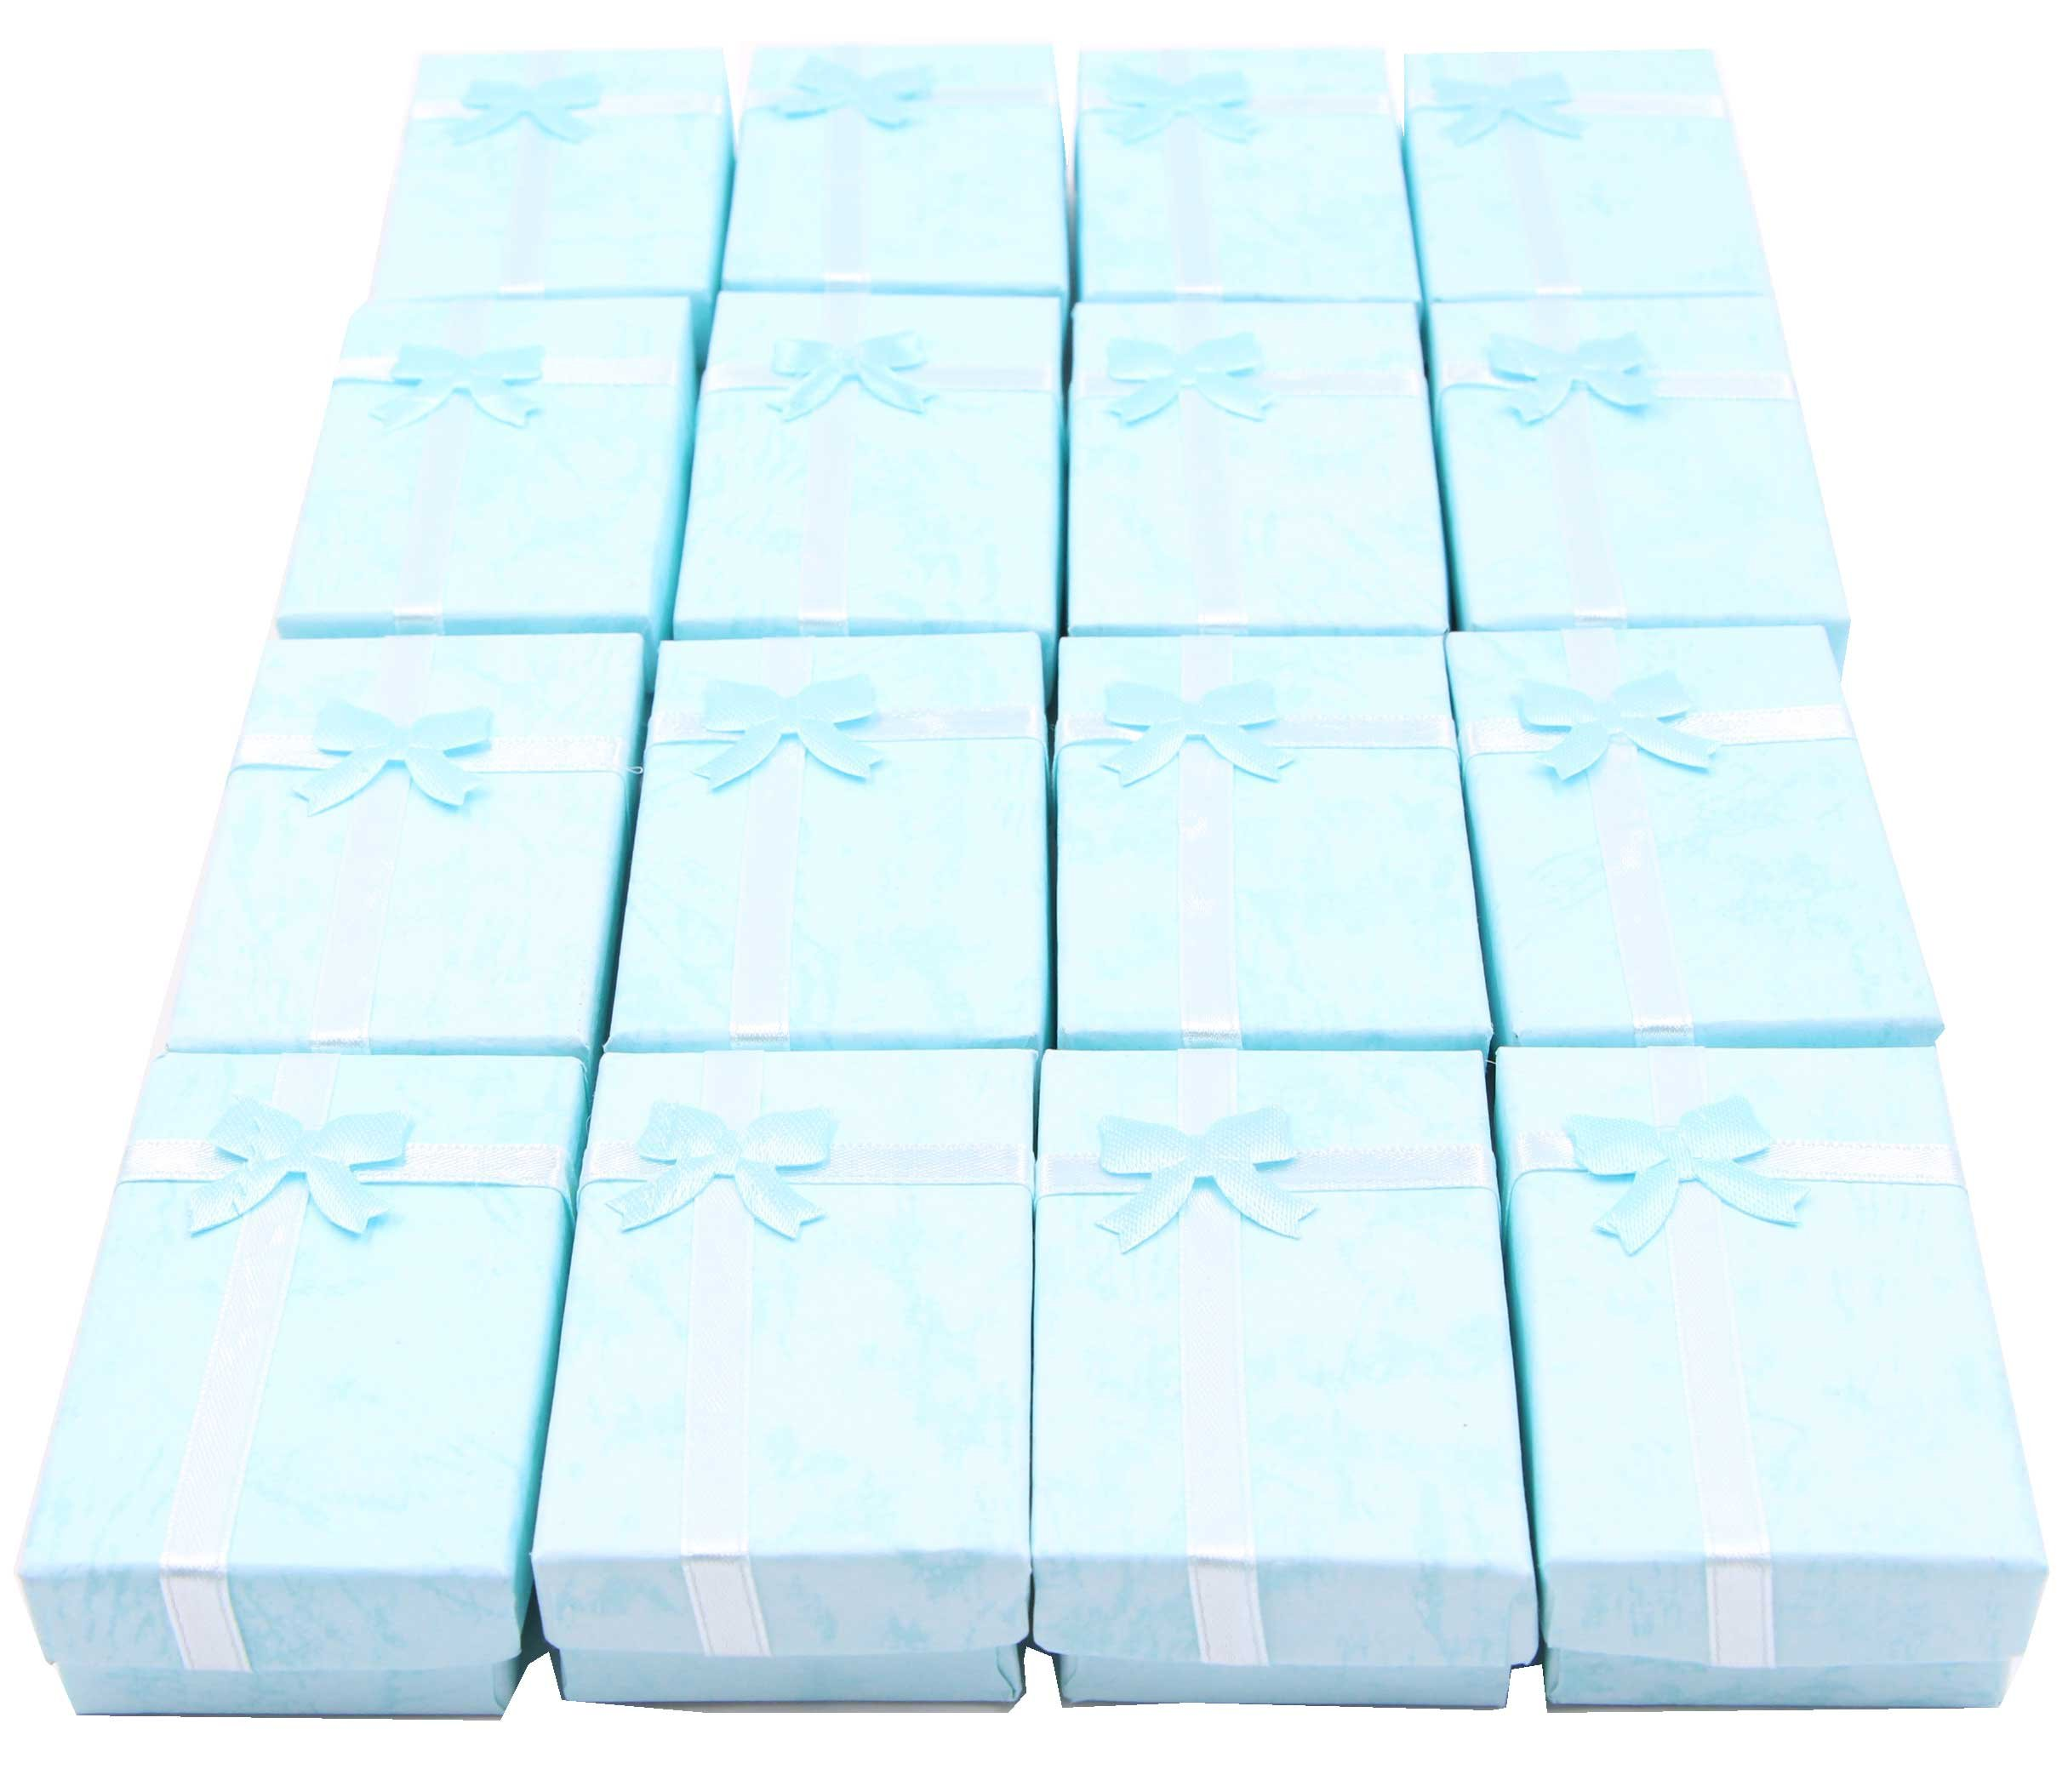 LeBeila 16pcs Paper Jewelry Gifts Boxes For Jewelry Display-Rings, Small Watches, Necklaces, Earrings, Bracelet Gift Packaging Box (Sky Blue)